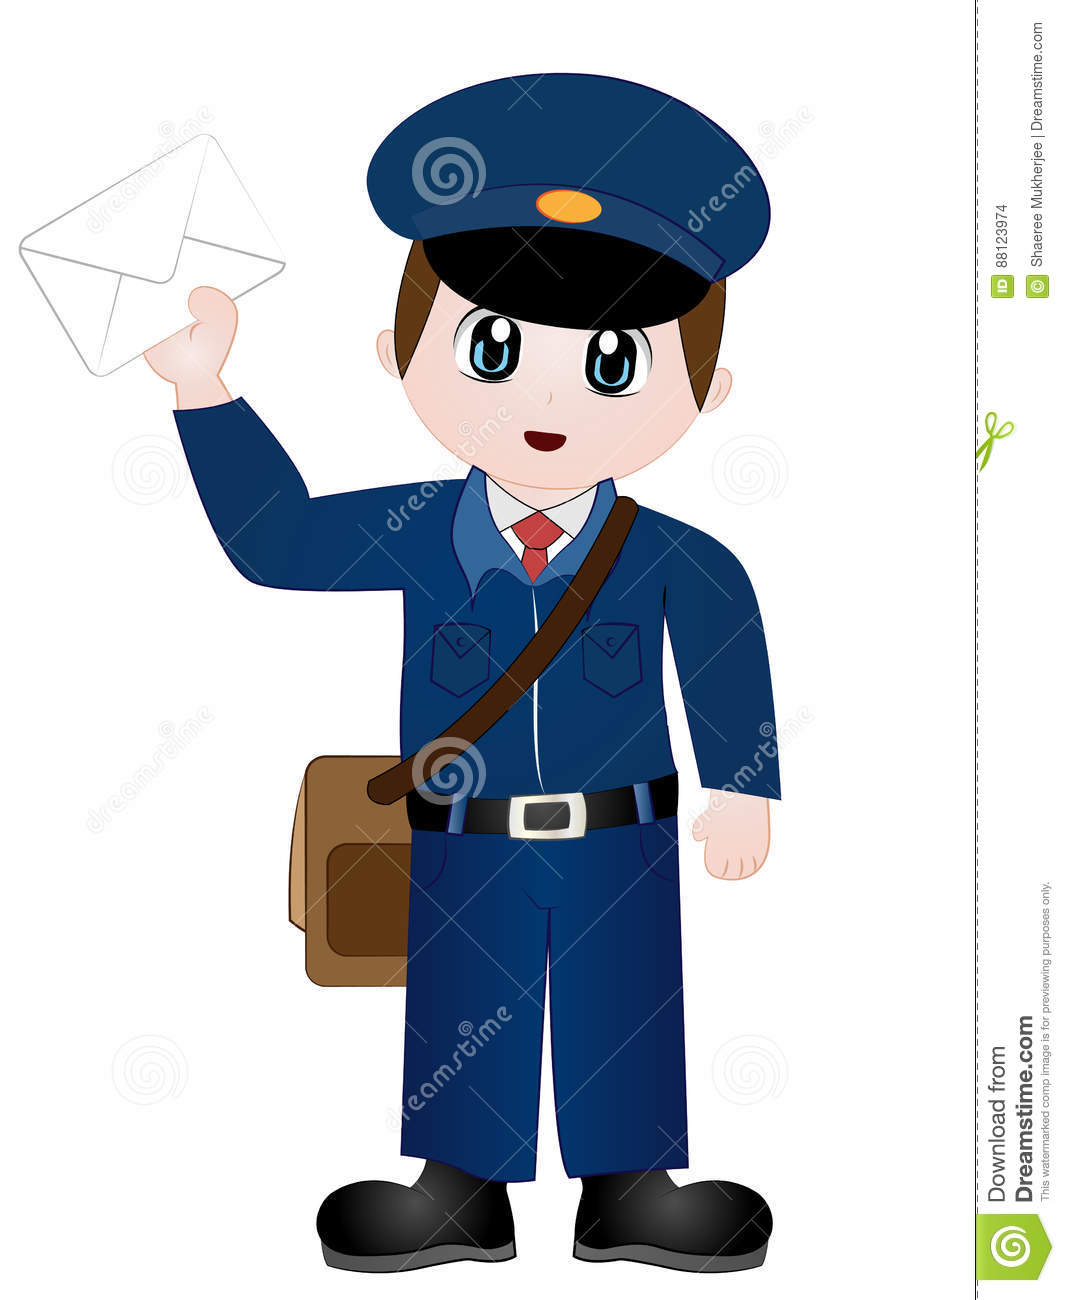 Postman clipart 5 » Clipart Station.